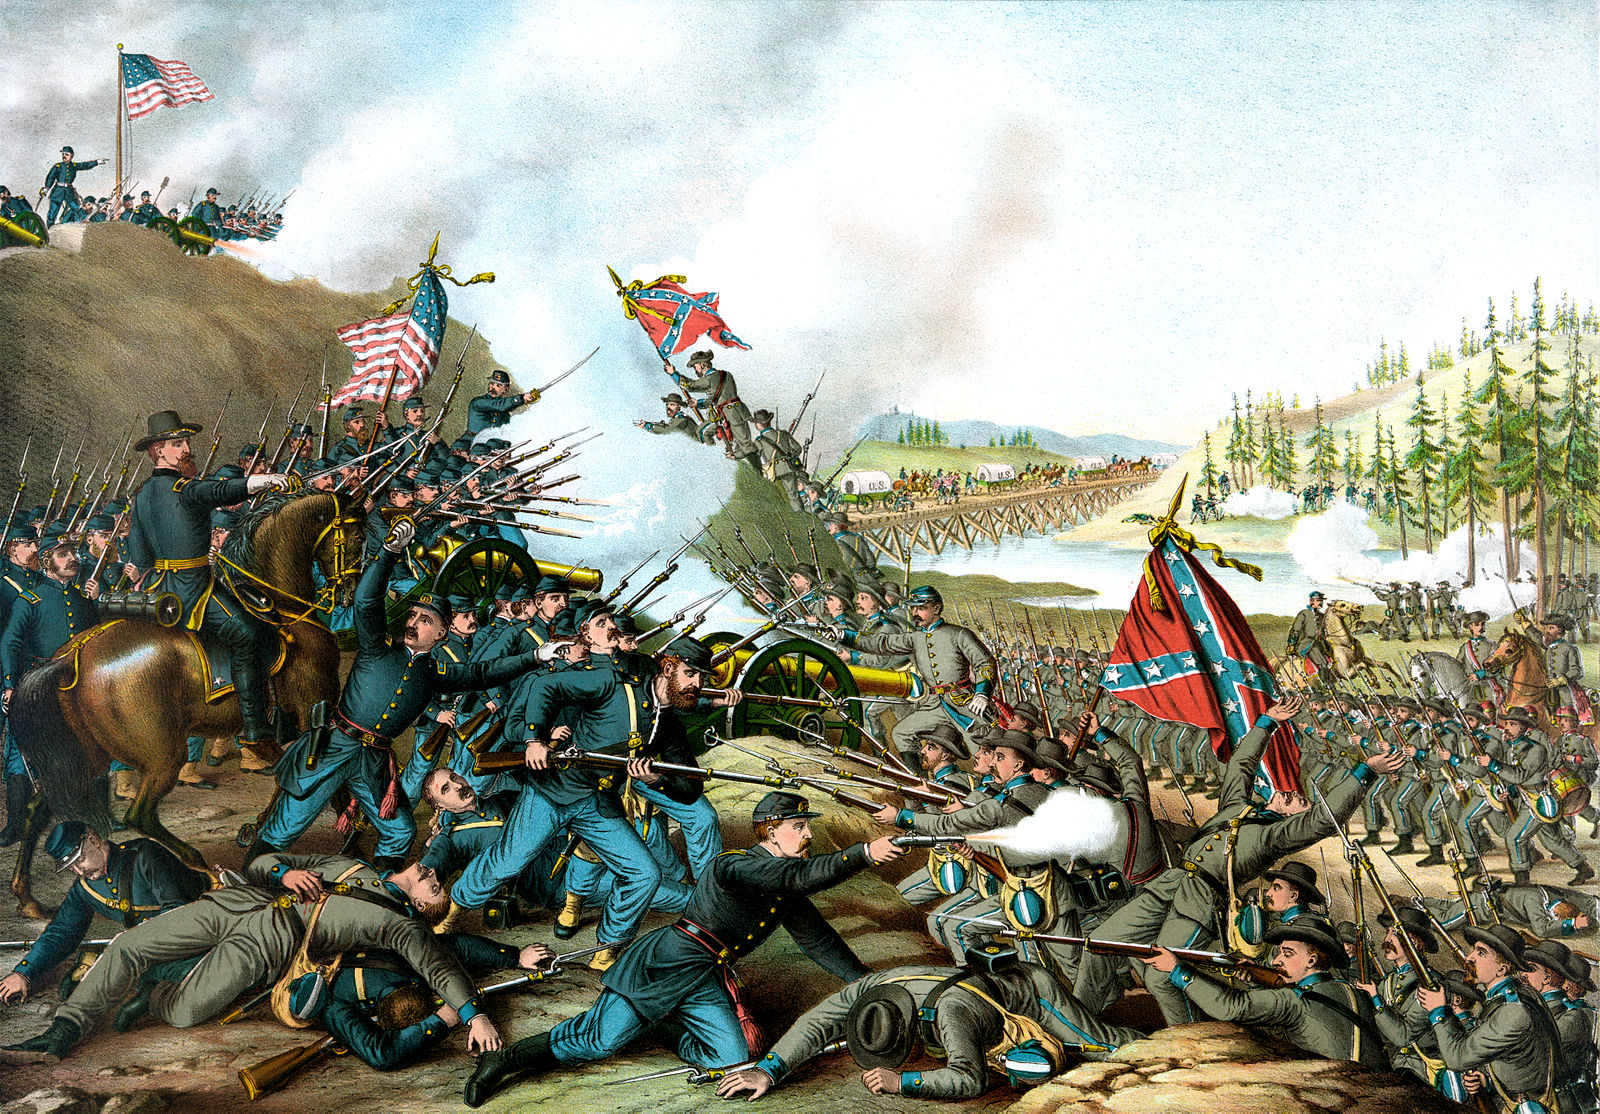 the events that led to the american victory at the battle of sullivans island